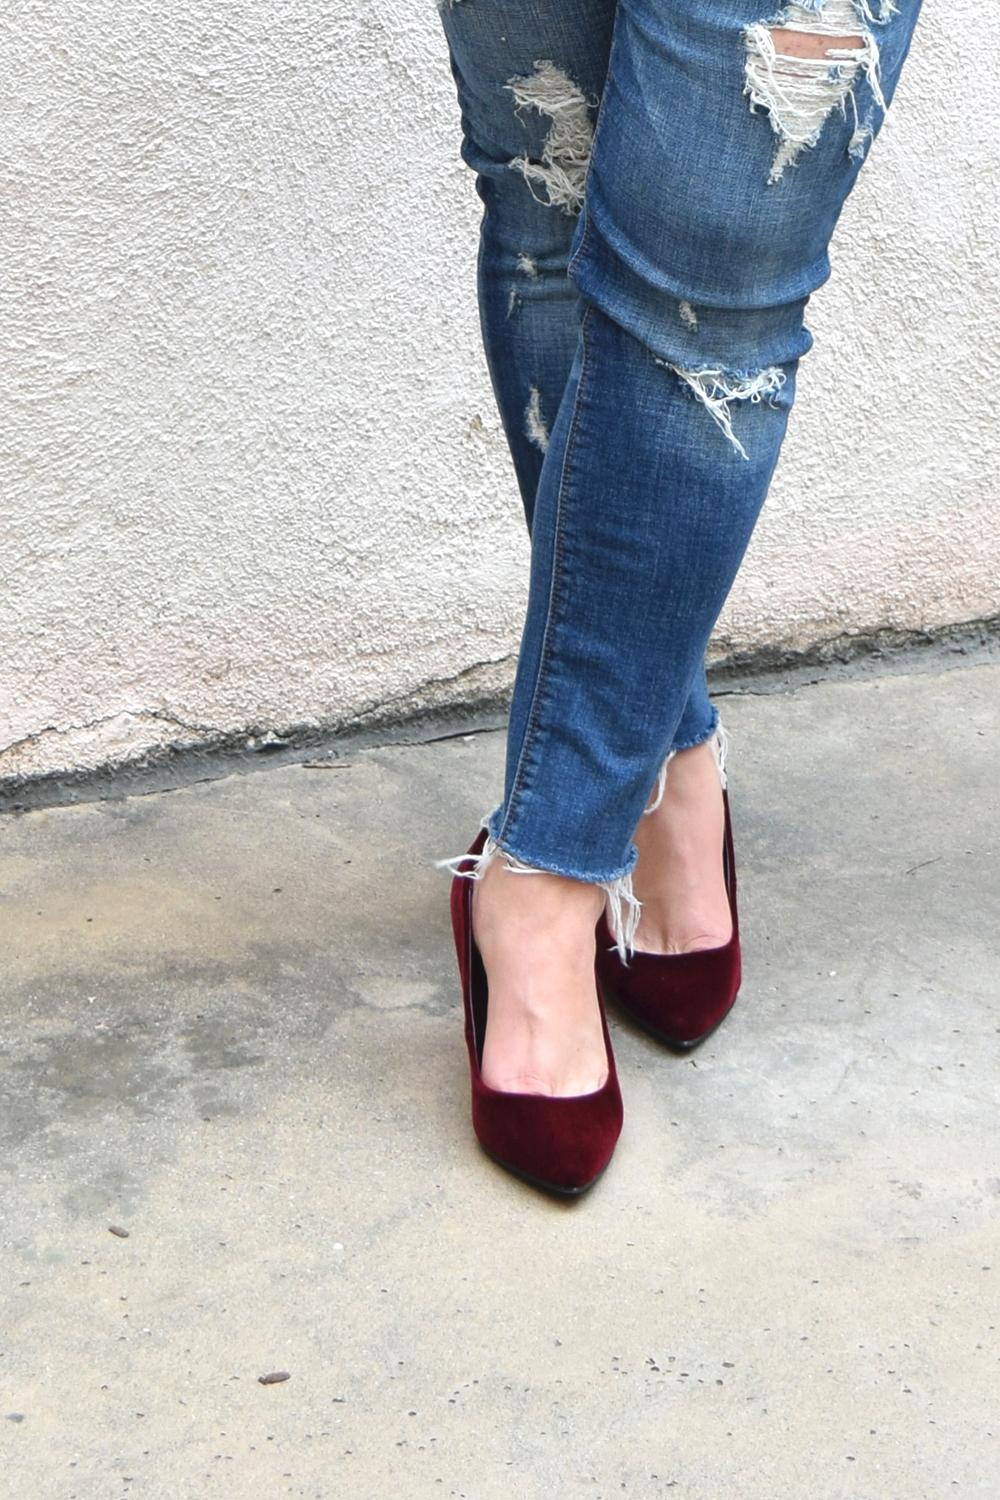 old-navy-velvet-pumps-for-women-outfit-barefoot-in-la-fashion-blog-style-ideas-0018